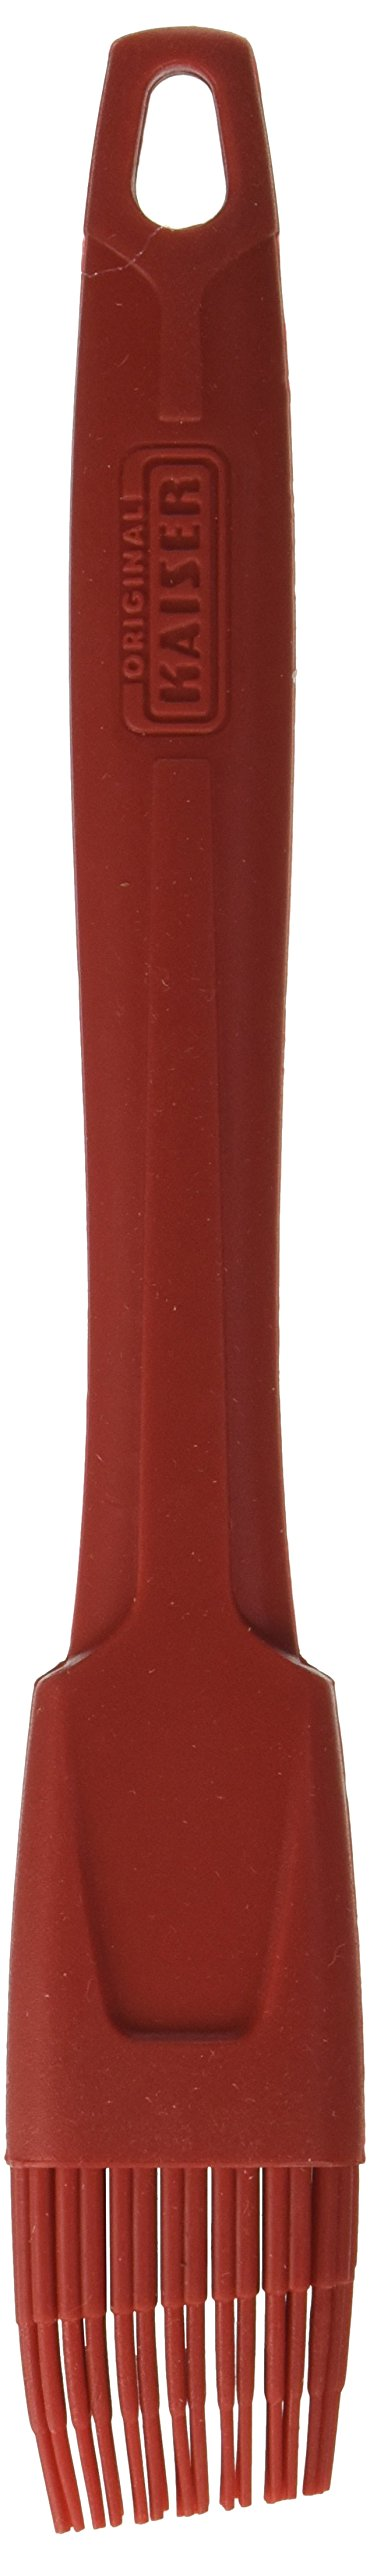 Kaiser 686028'' Kaiserflex Basting & Pastry Brush, Red